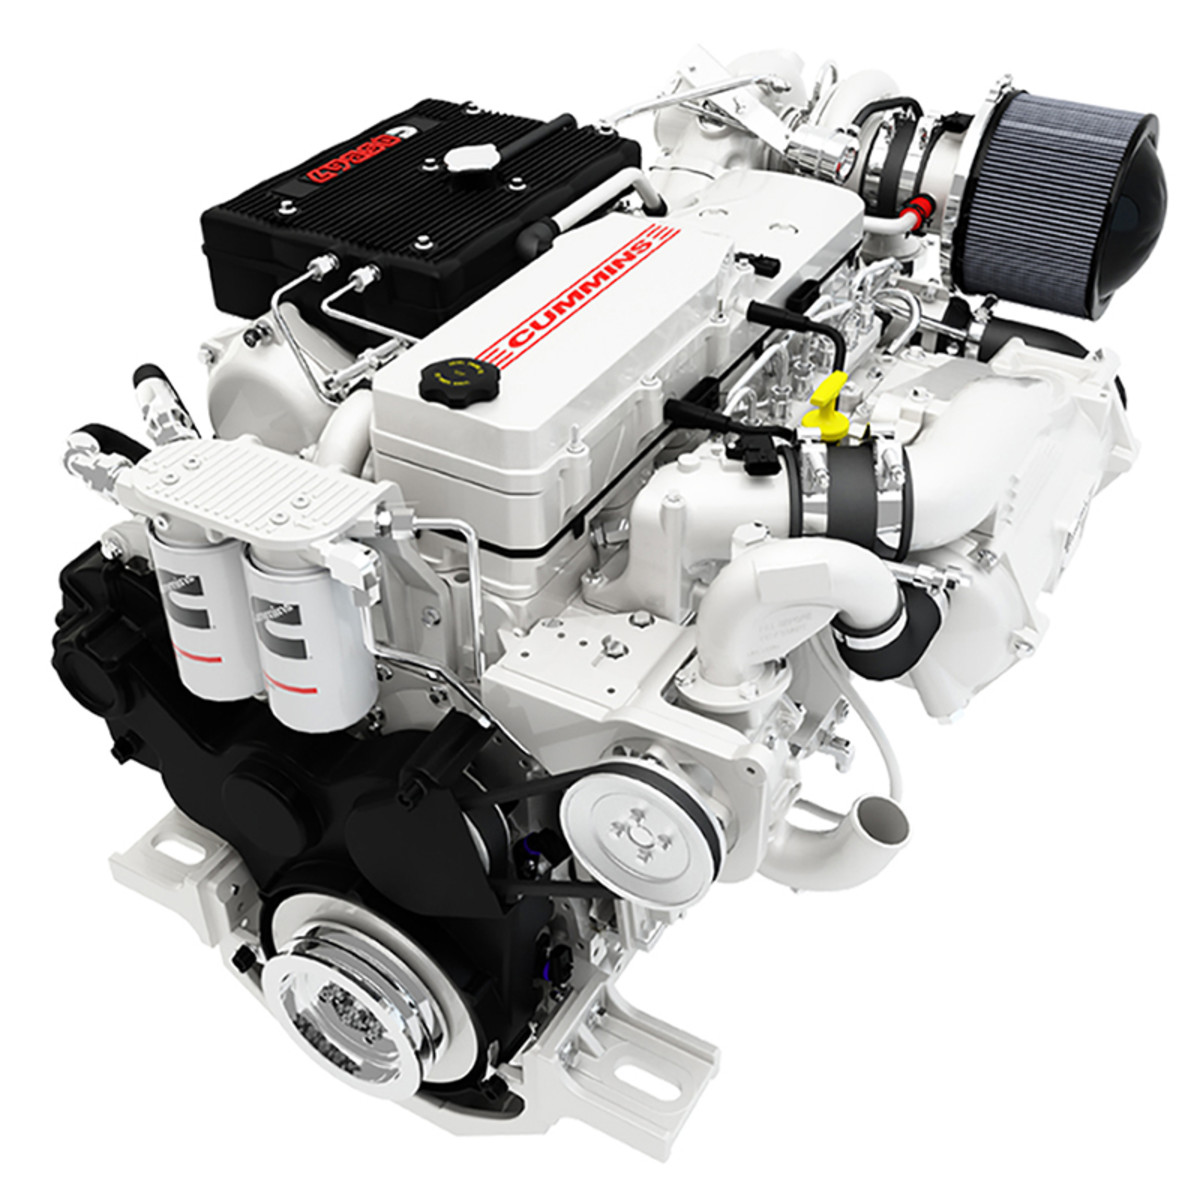 The QSB6.7 engines used in these two repowers are the latest from the Cummins B Series. More than 10 million B Series engines are in service around the world in many on- and off-highway applications.